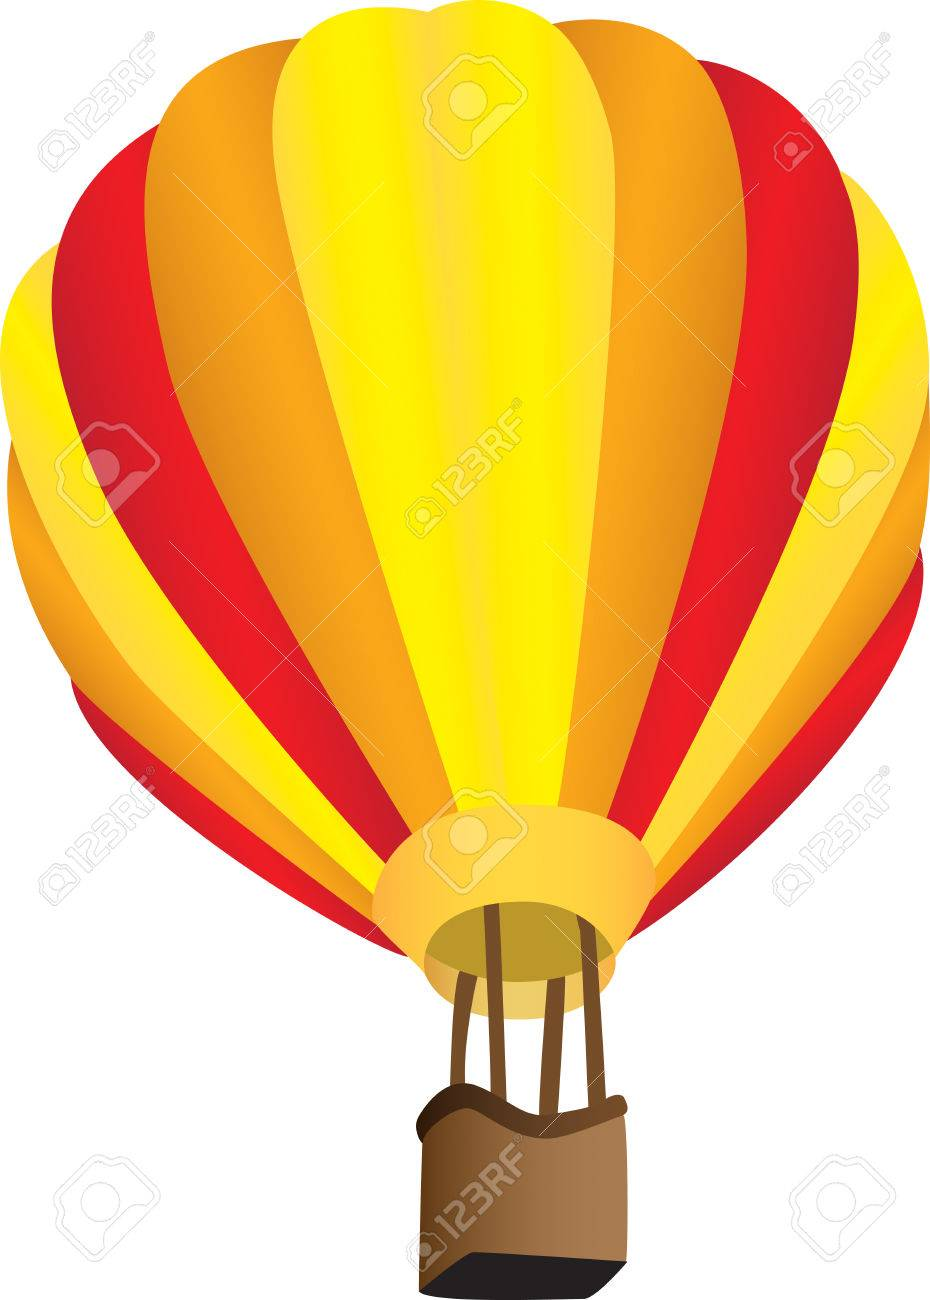 Three dimensional illustration of stripy hot air balloon, isolated on white background. Stock Vector - 8558214